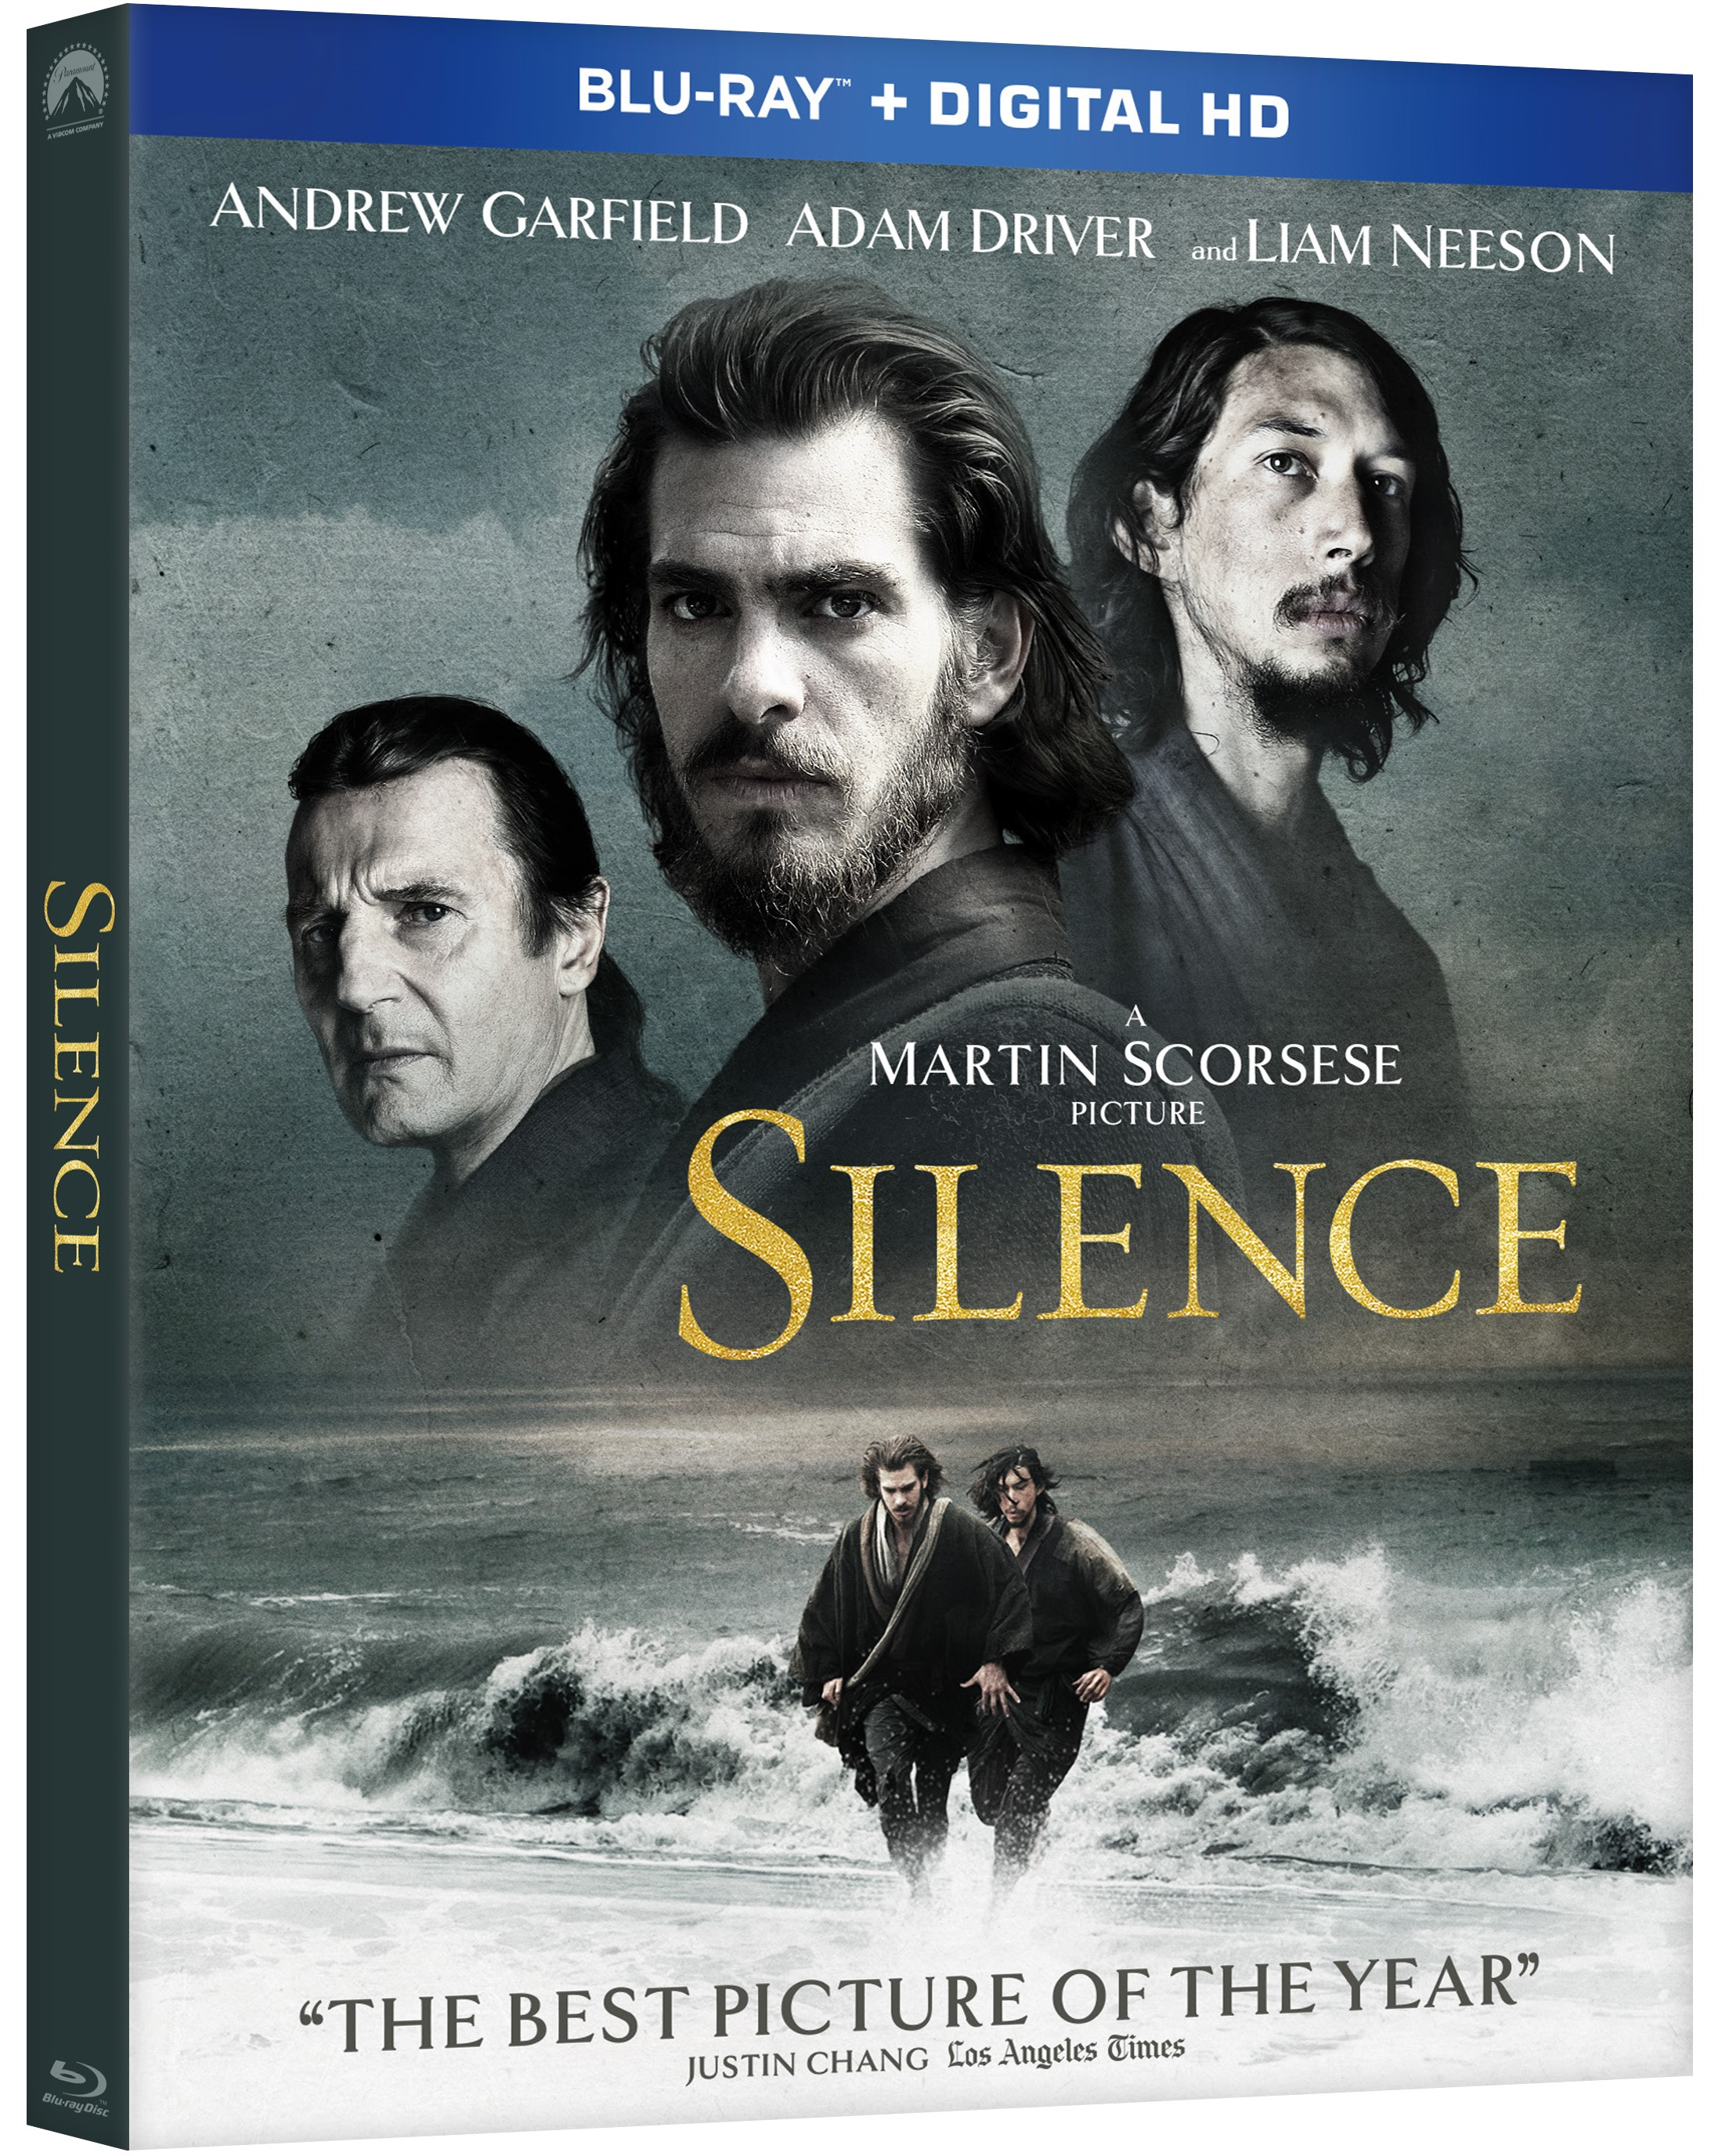 Silence Blu-ray Review